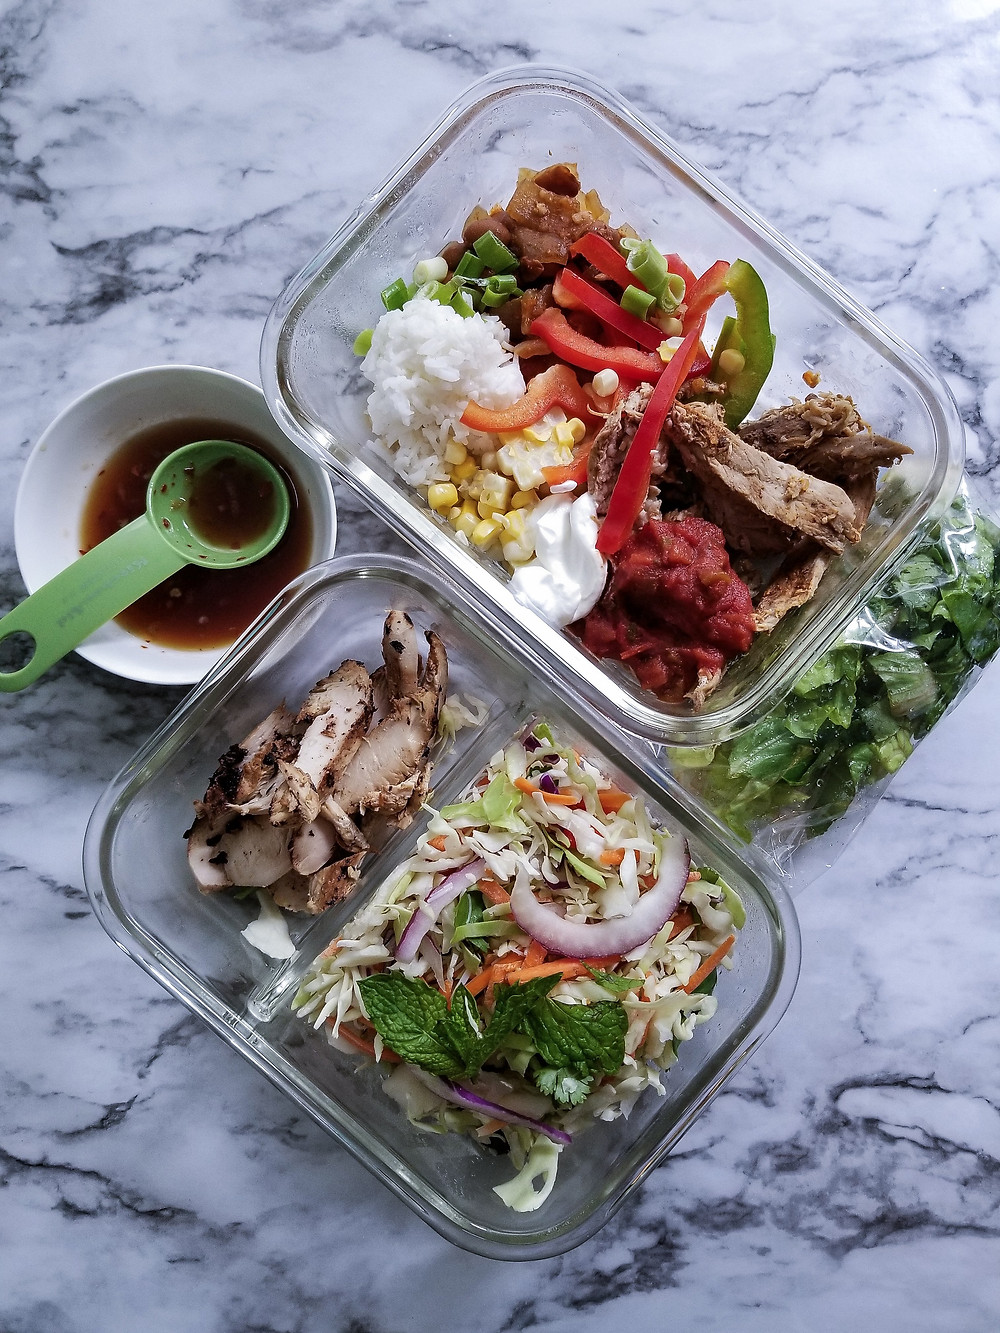 Food portioned in containers.